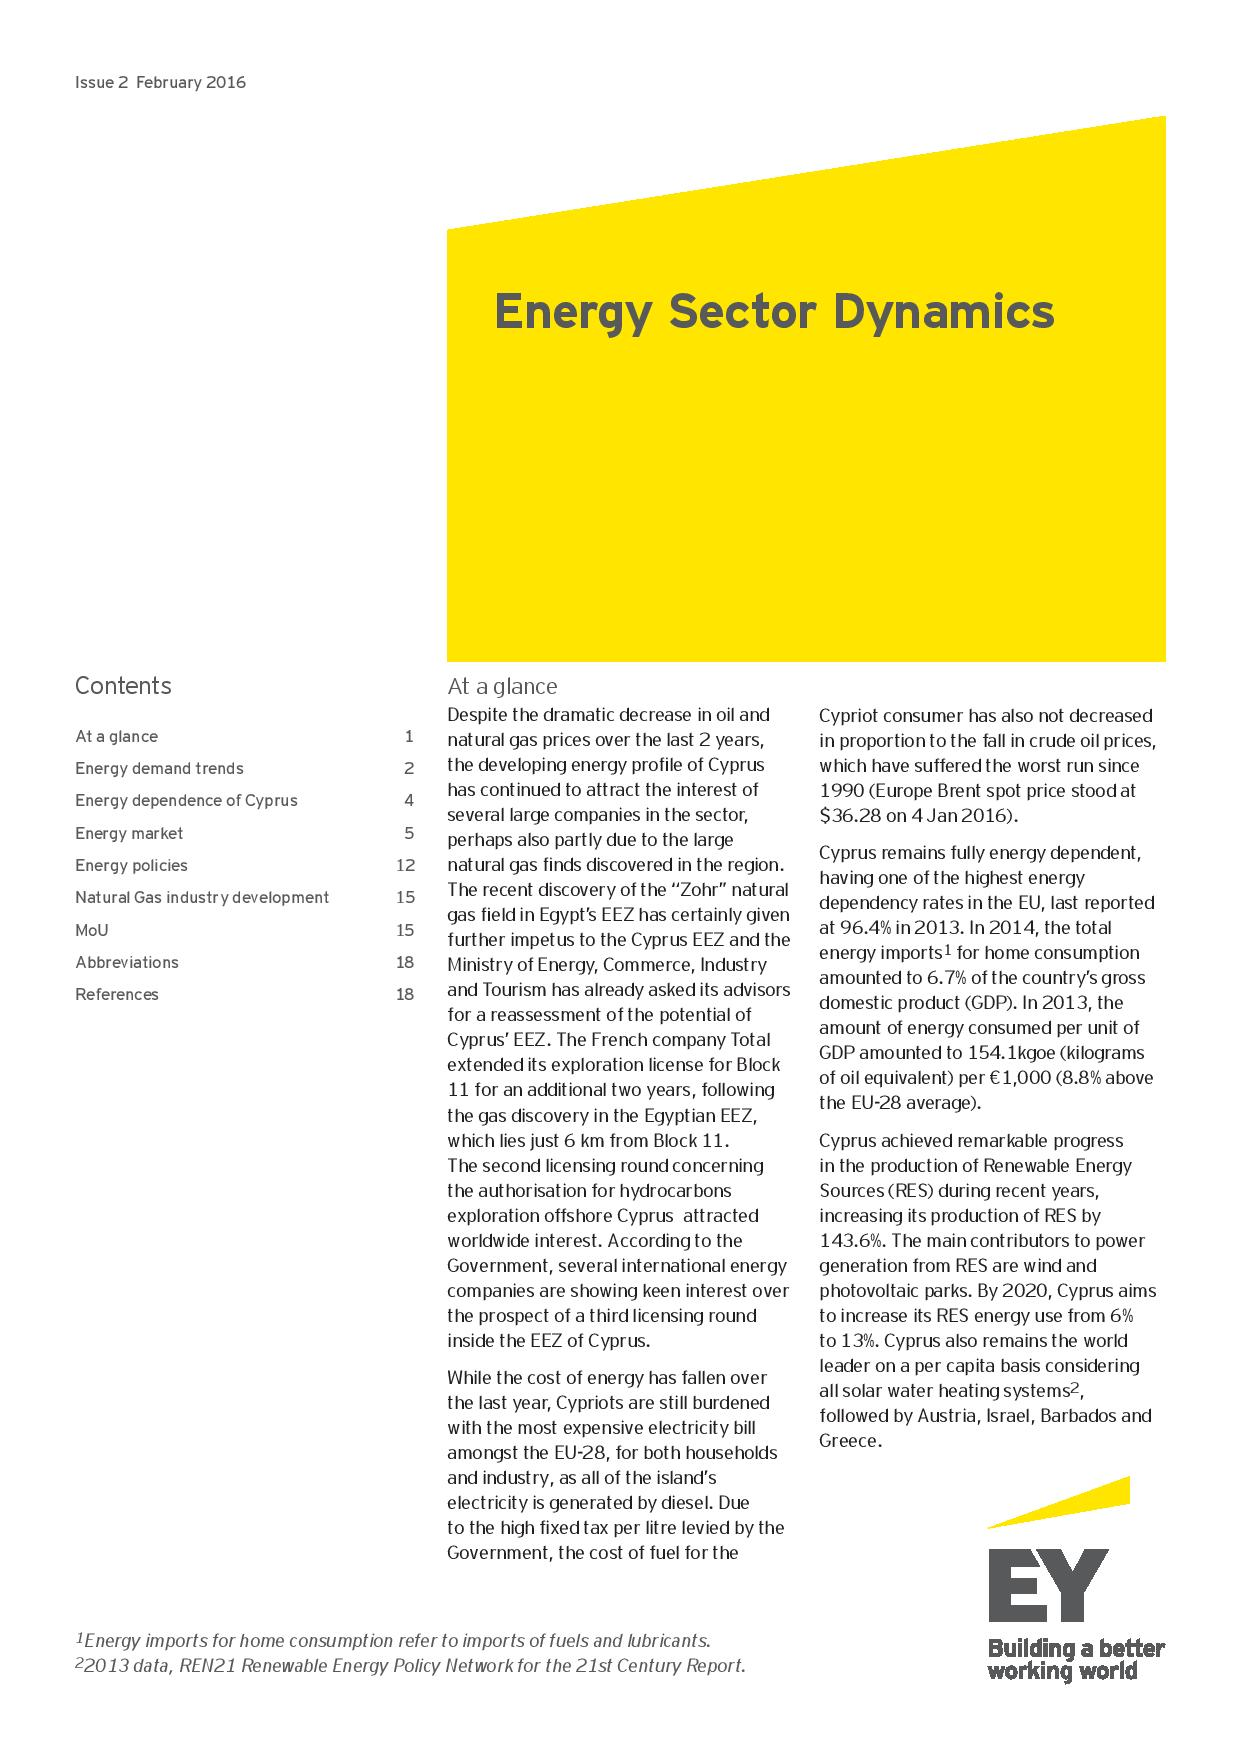 EY: Energy Sector Dynamics Issue #2 February 2016